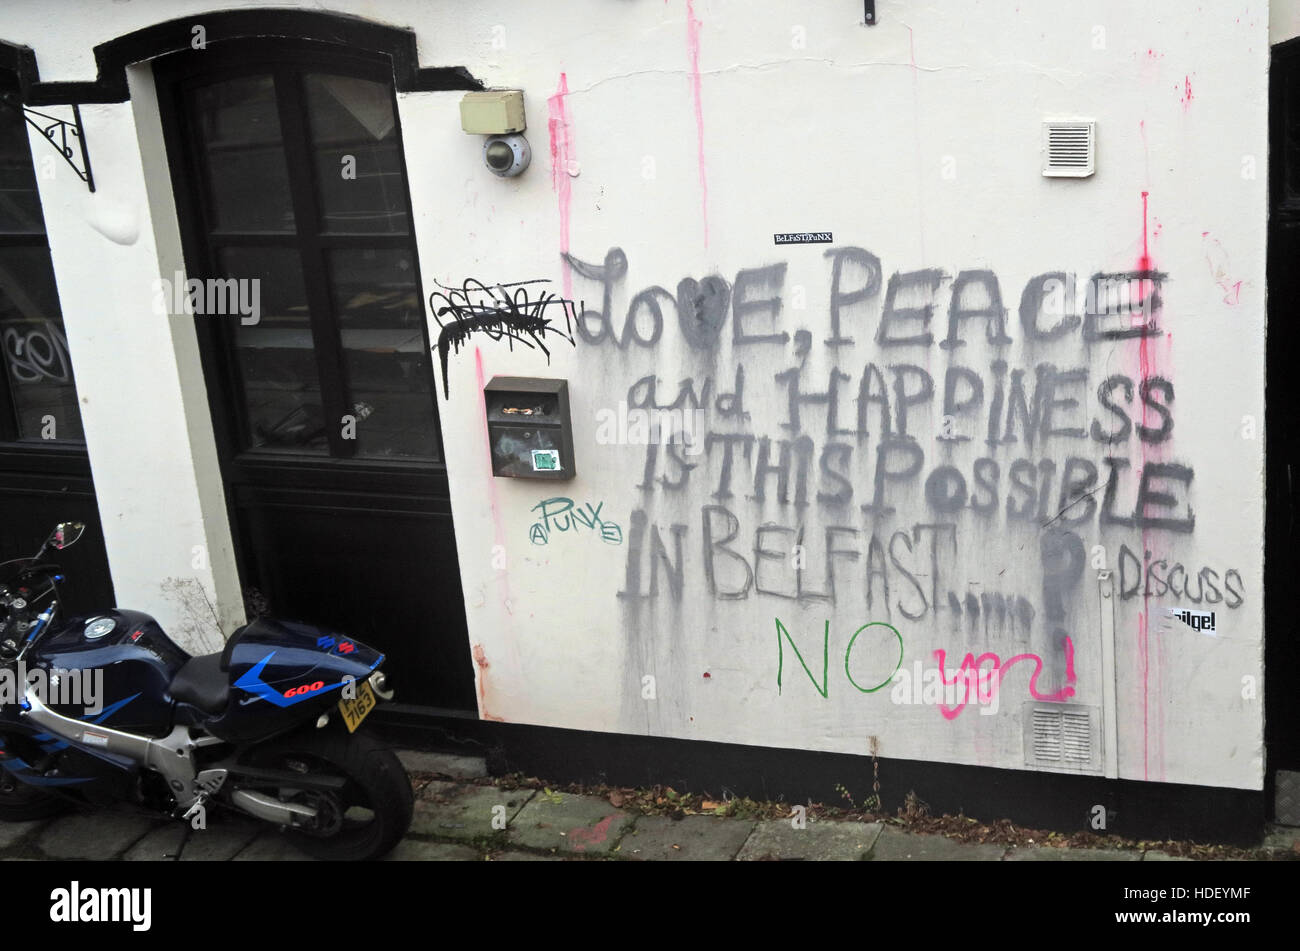 Love, Peace and Happiness,Is this possible in Belfast? Discuss - Stock Image